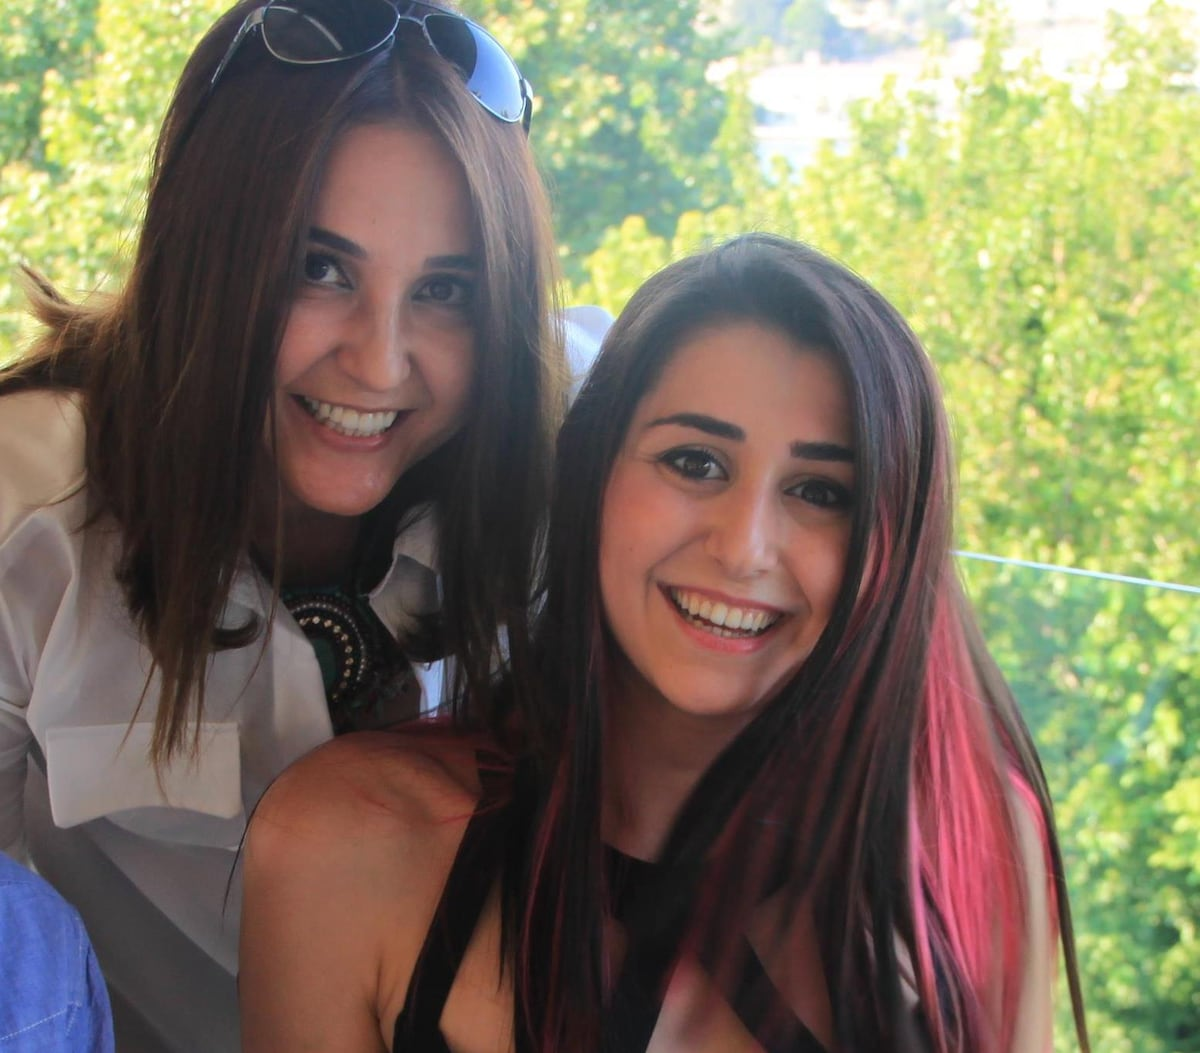 Melis & Oya from İstanbul